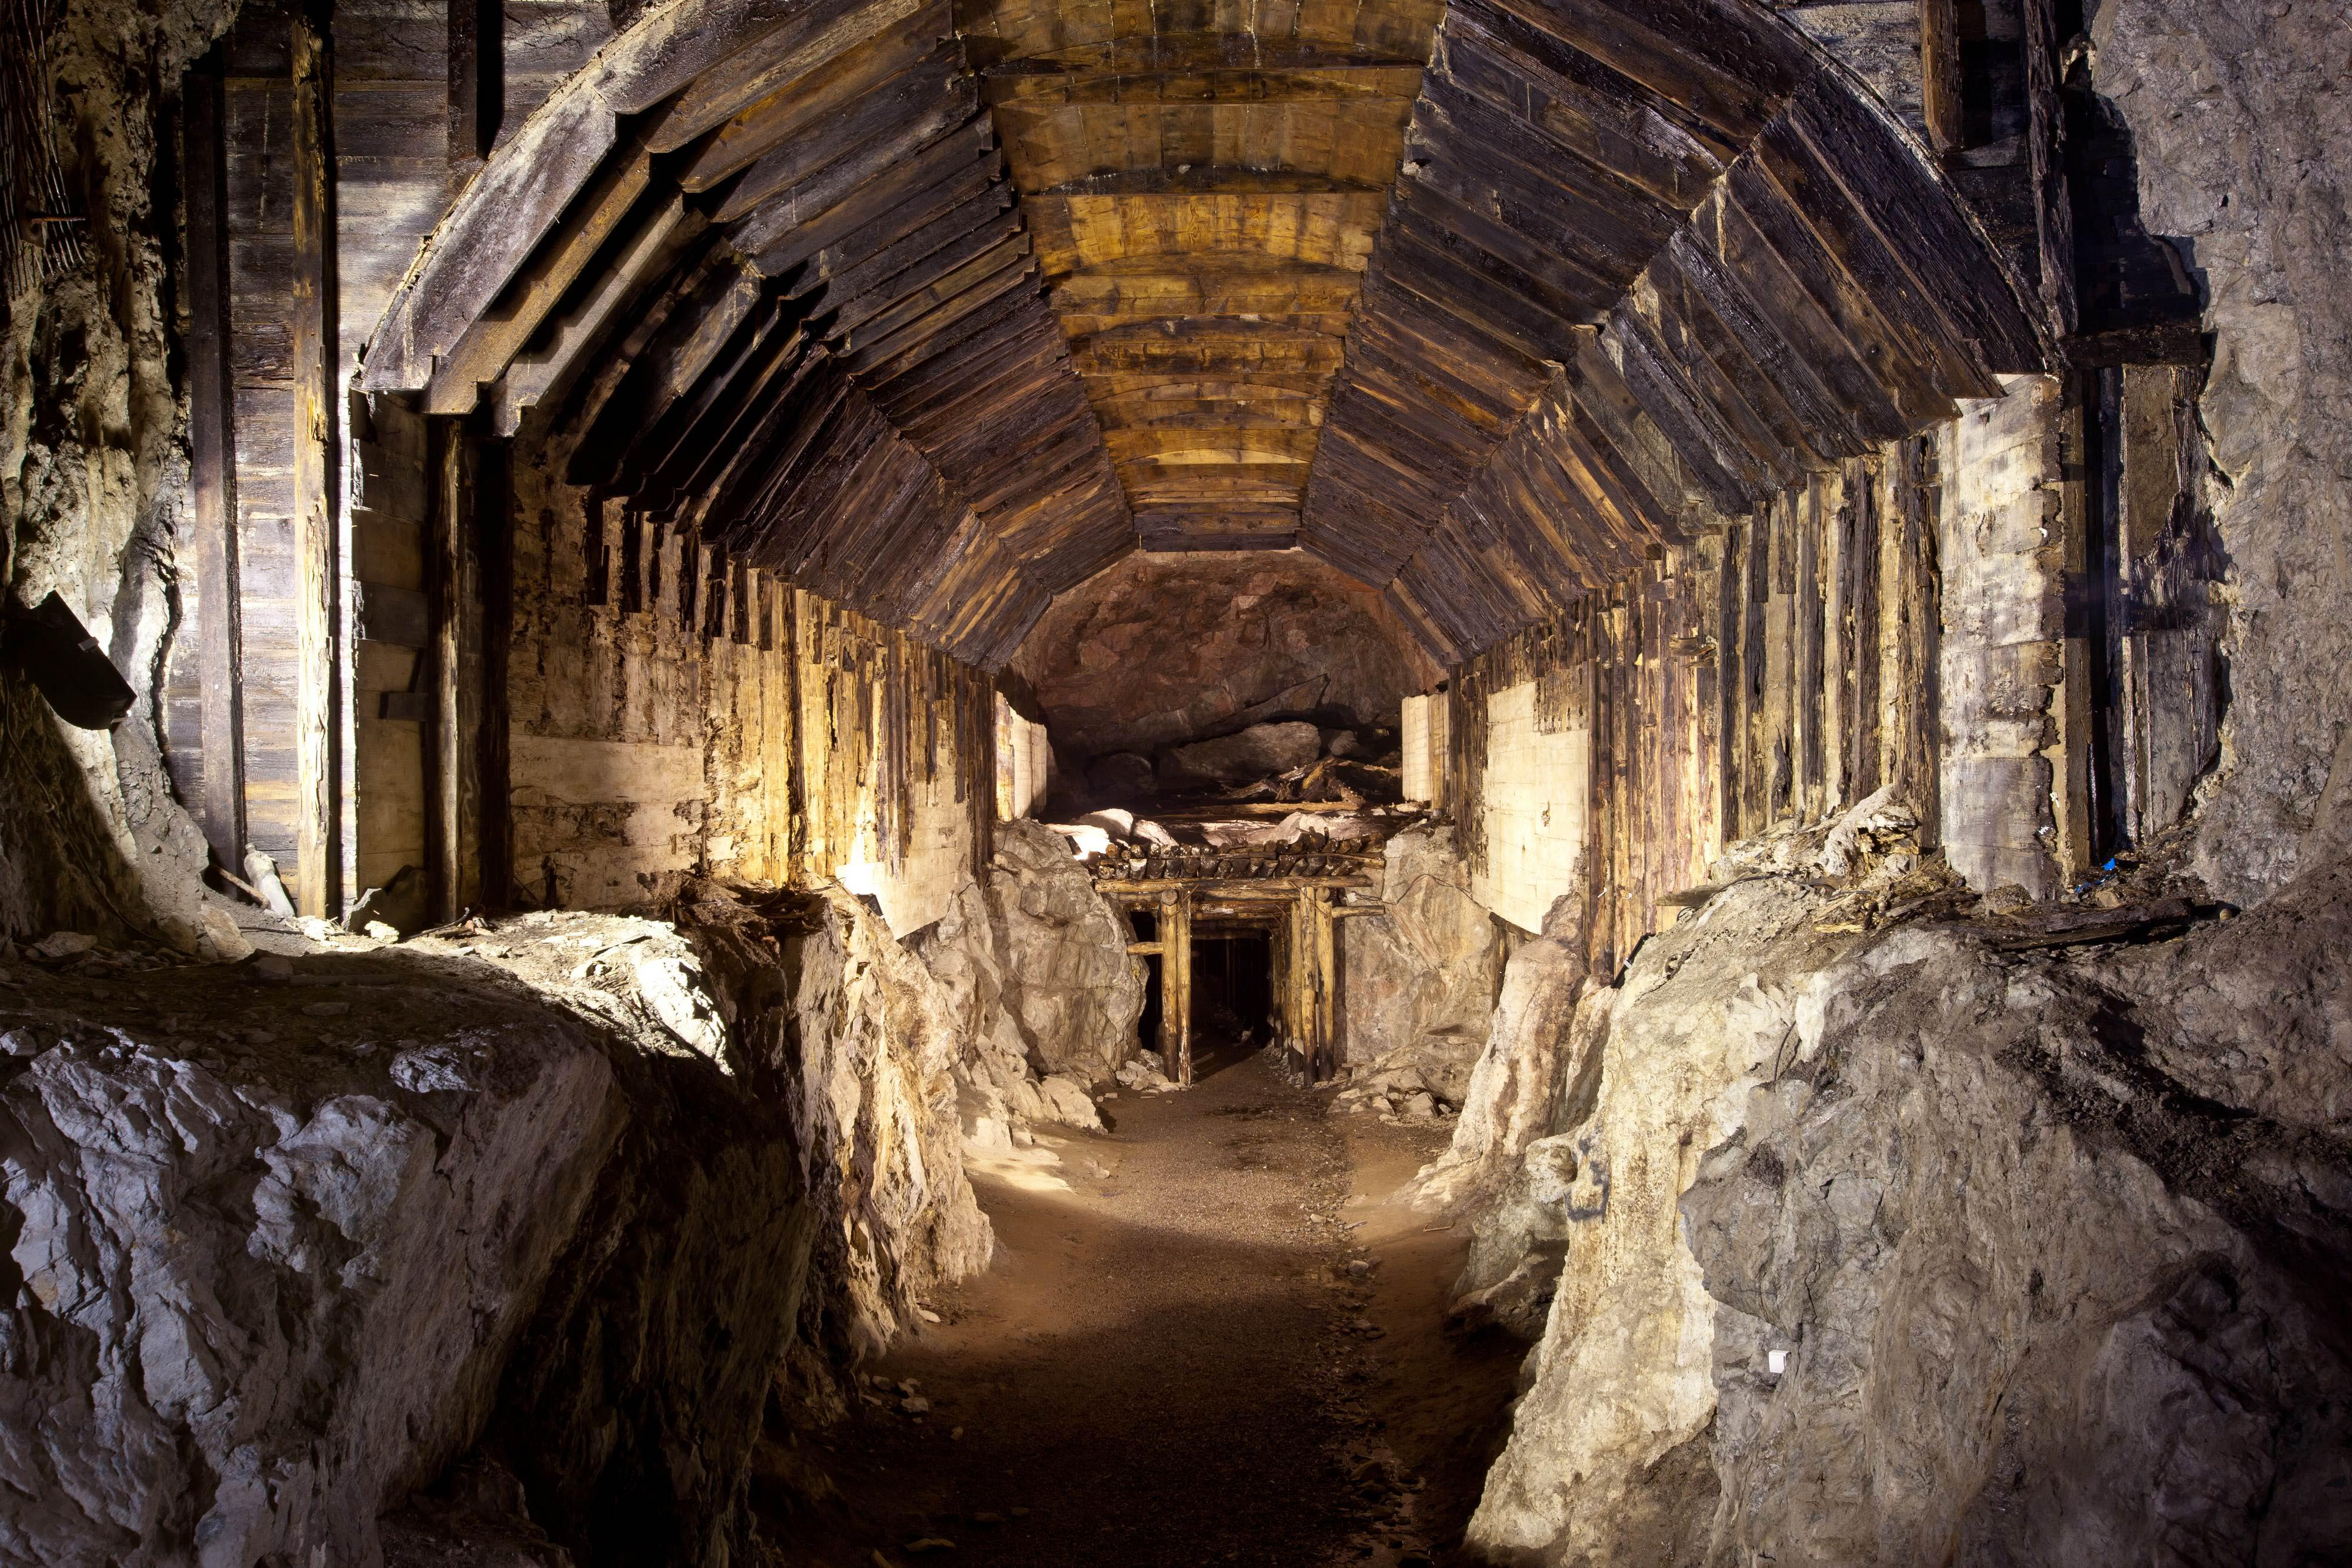 FILE - This file photo from March.2012, shows a part of a subterranean system built by Nazi Germany in what is today Gluszyca-Osowka, Poland. According to Polish lore, a Nazi train loaded with gold, and weapons vanished into a mountain at the end of World War II, as the Germans fled the Soviet advance. Now two men claim they know the location of the mystery train and are demanding 10 percent of its value in exchange for revealing its location. (AP Photo,str)